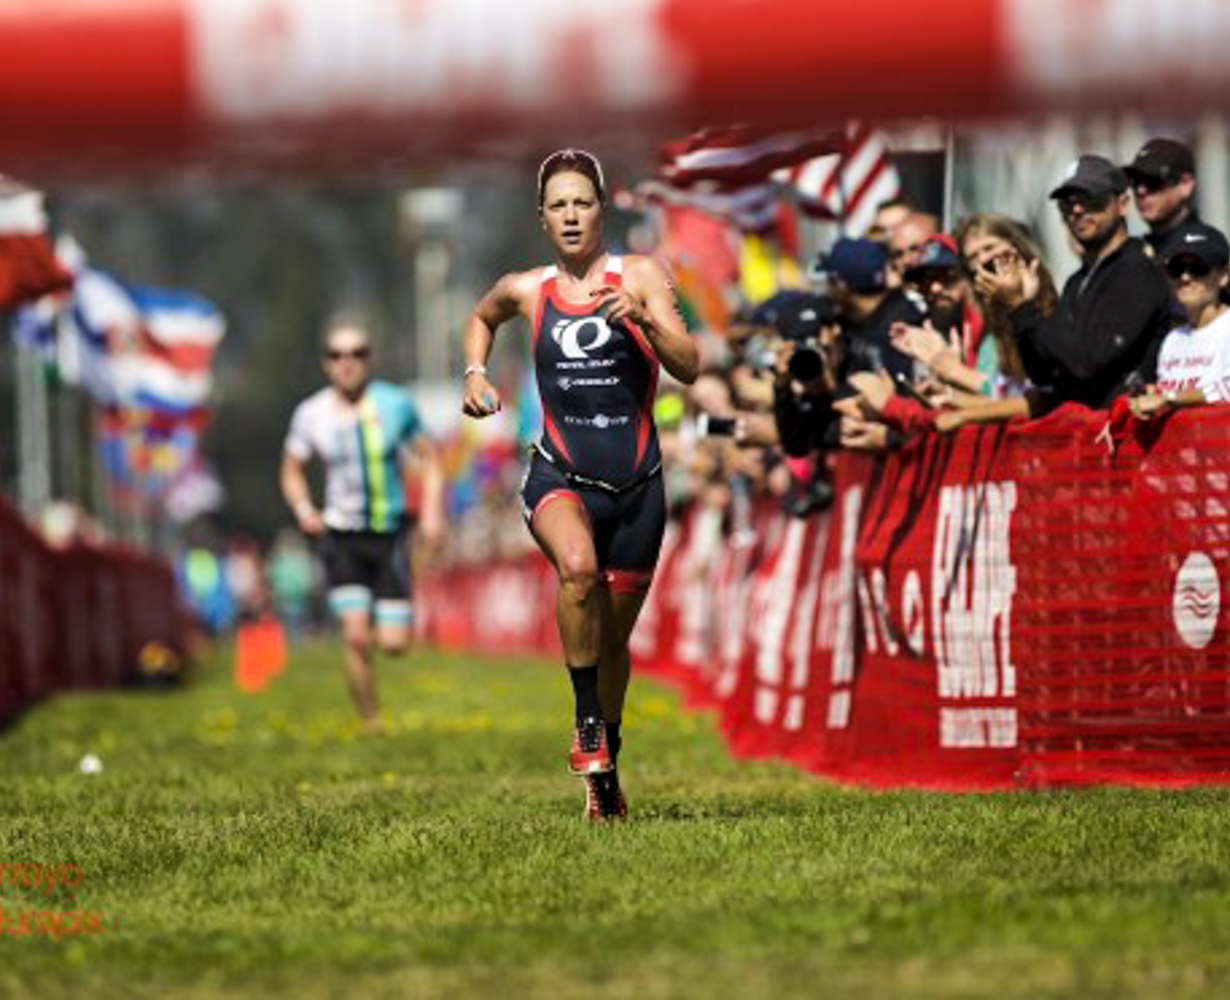 Escape Alcatraz: Holly Lawrence from Great Britain Takes First Place in the Women's Pro Division